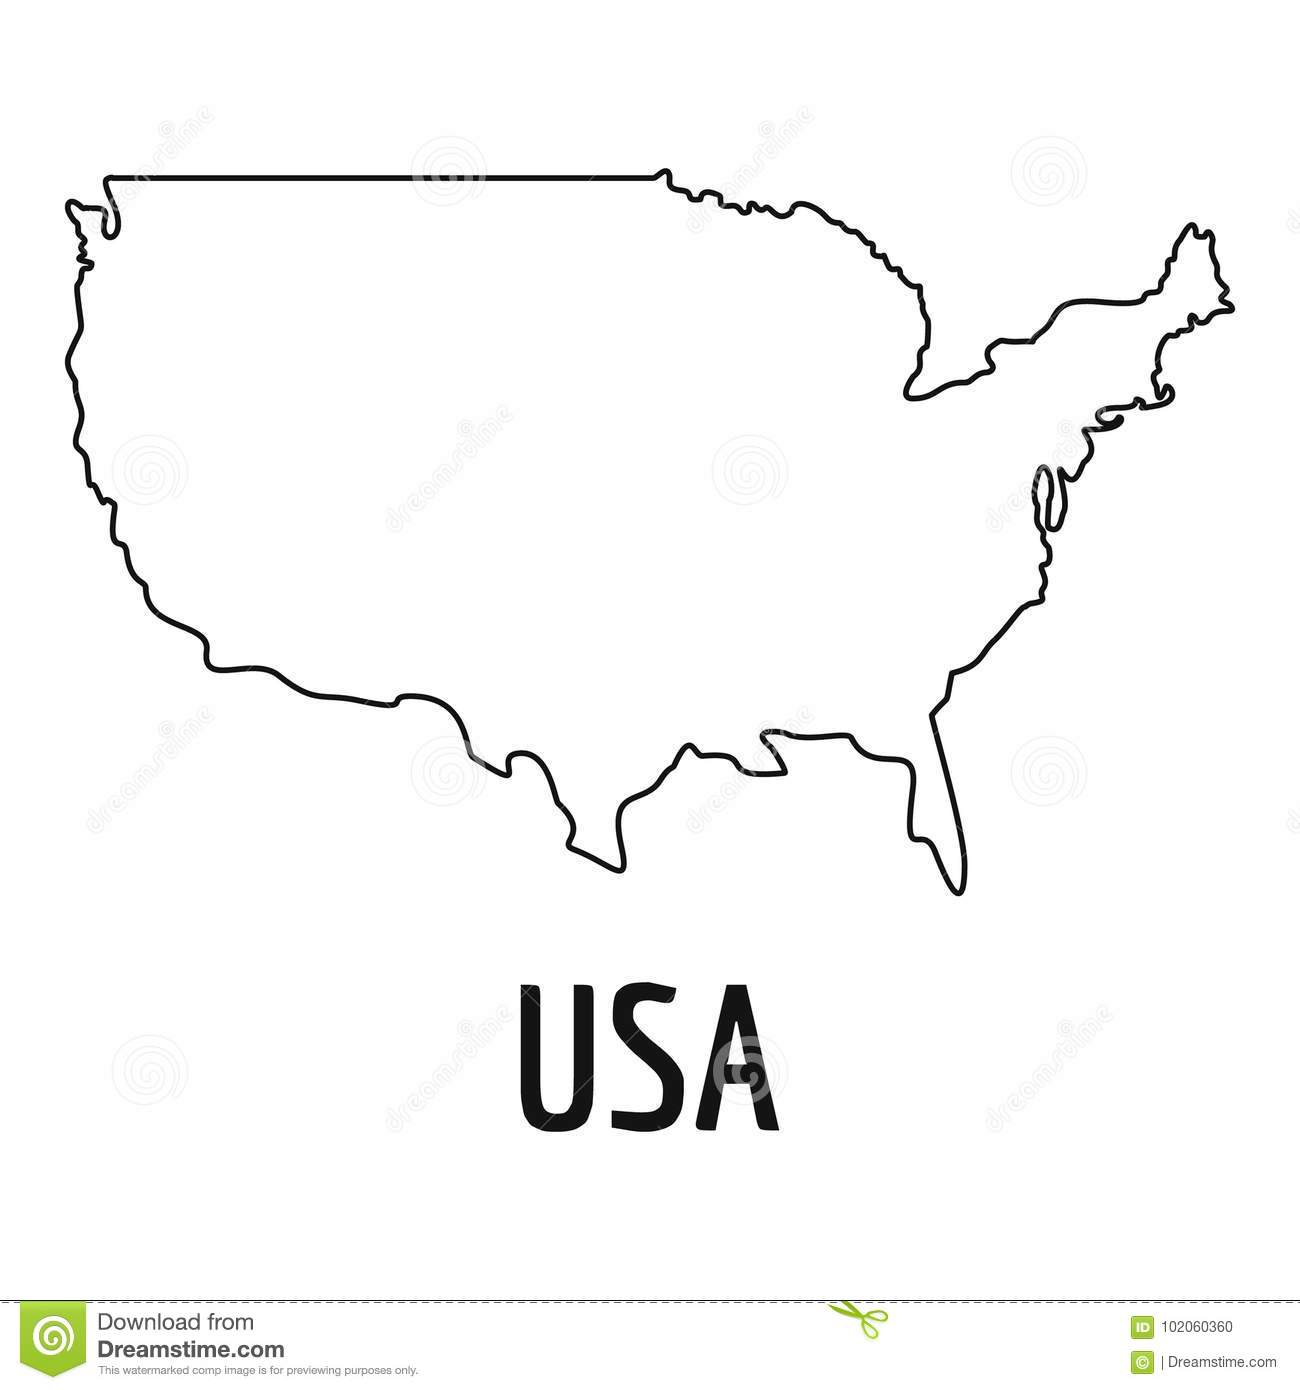 USA Map Thin Line Vector Simple Stock Vector - Illustration ... Simple Map Of The Usa on simple outline of the usa, simple map japan, simple us map, name all states in usa, simple map of usa states, simple united states, simple map uk, simple drawing of the usa, simple map australia, simple map canada,